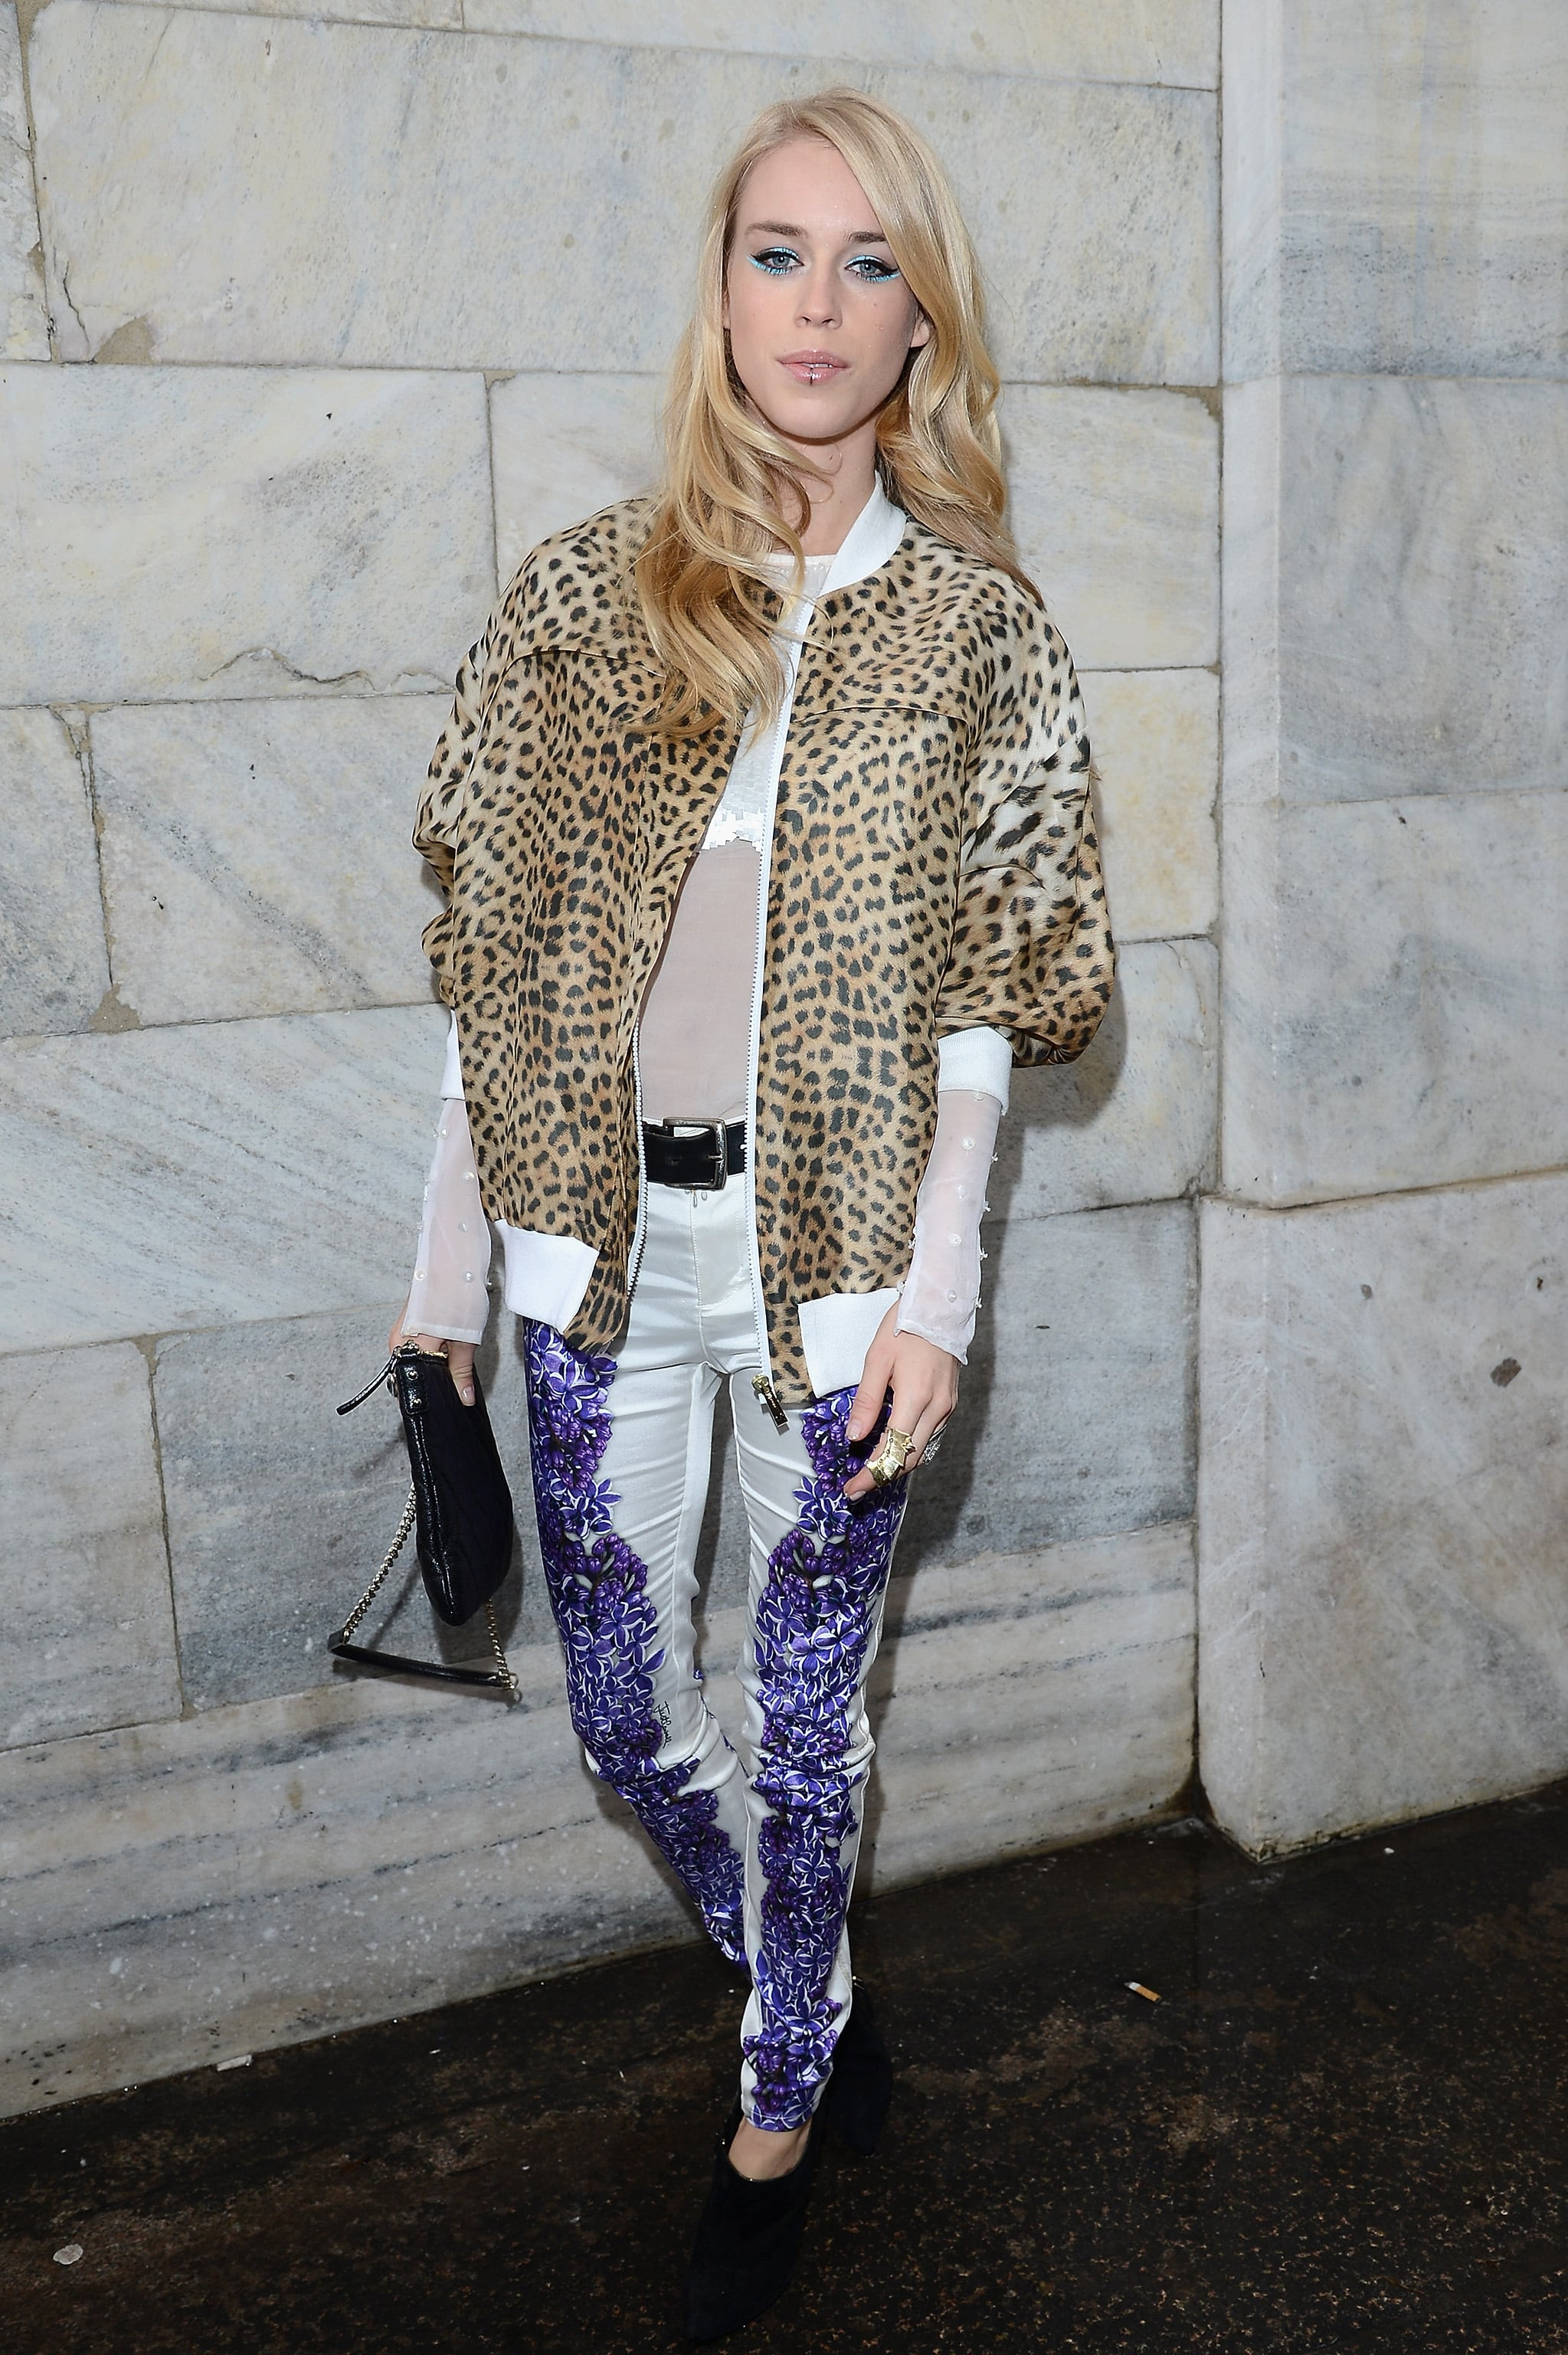 Mary Charteris at the Just Cavalli Fall 2013 show in Milan.